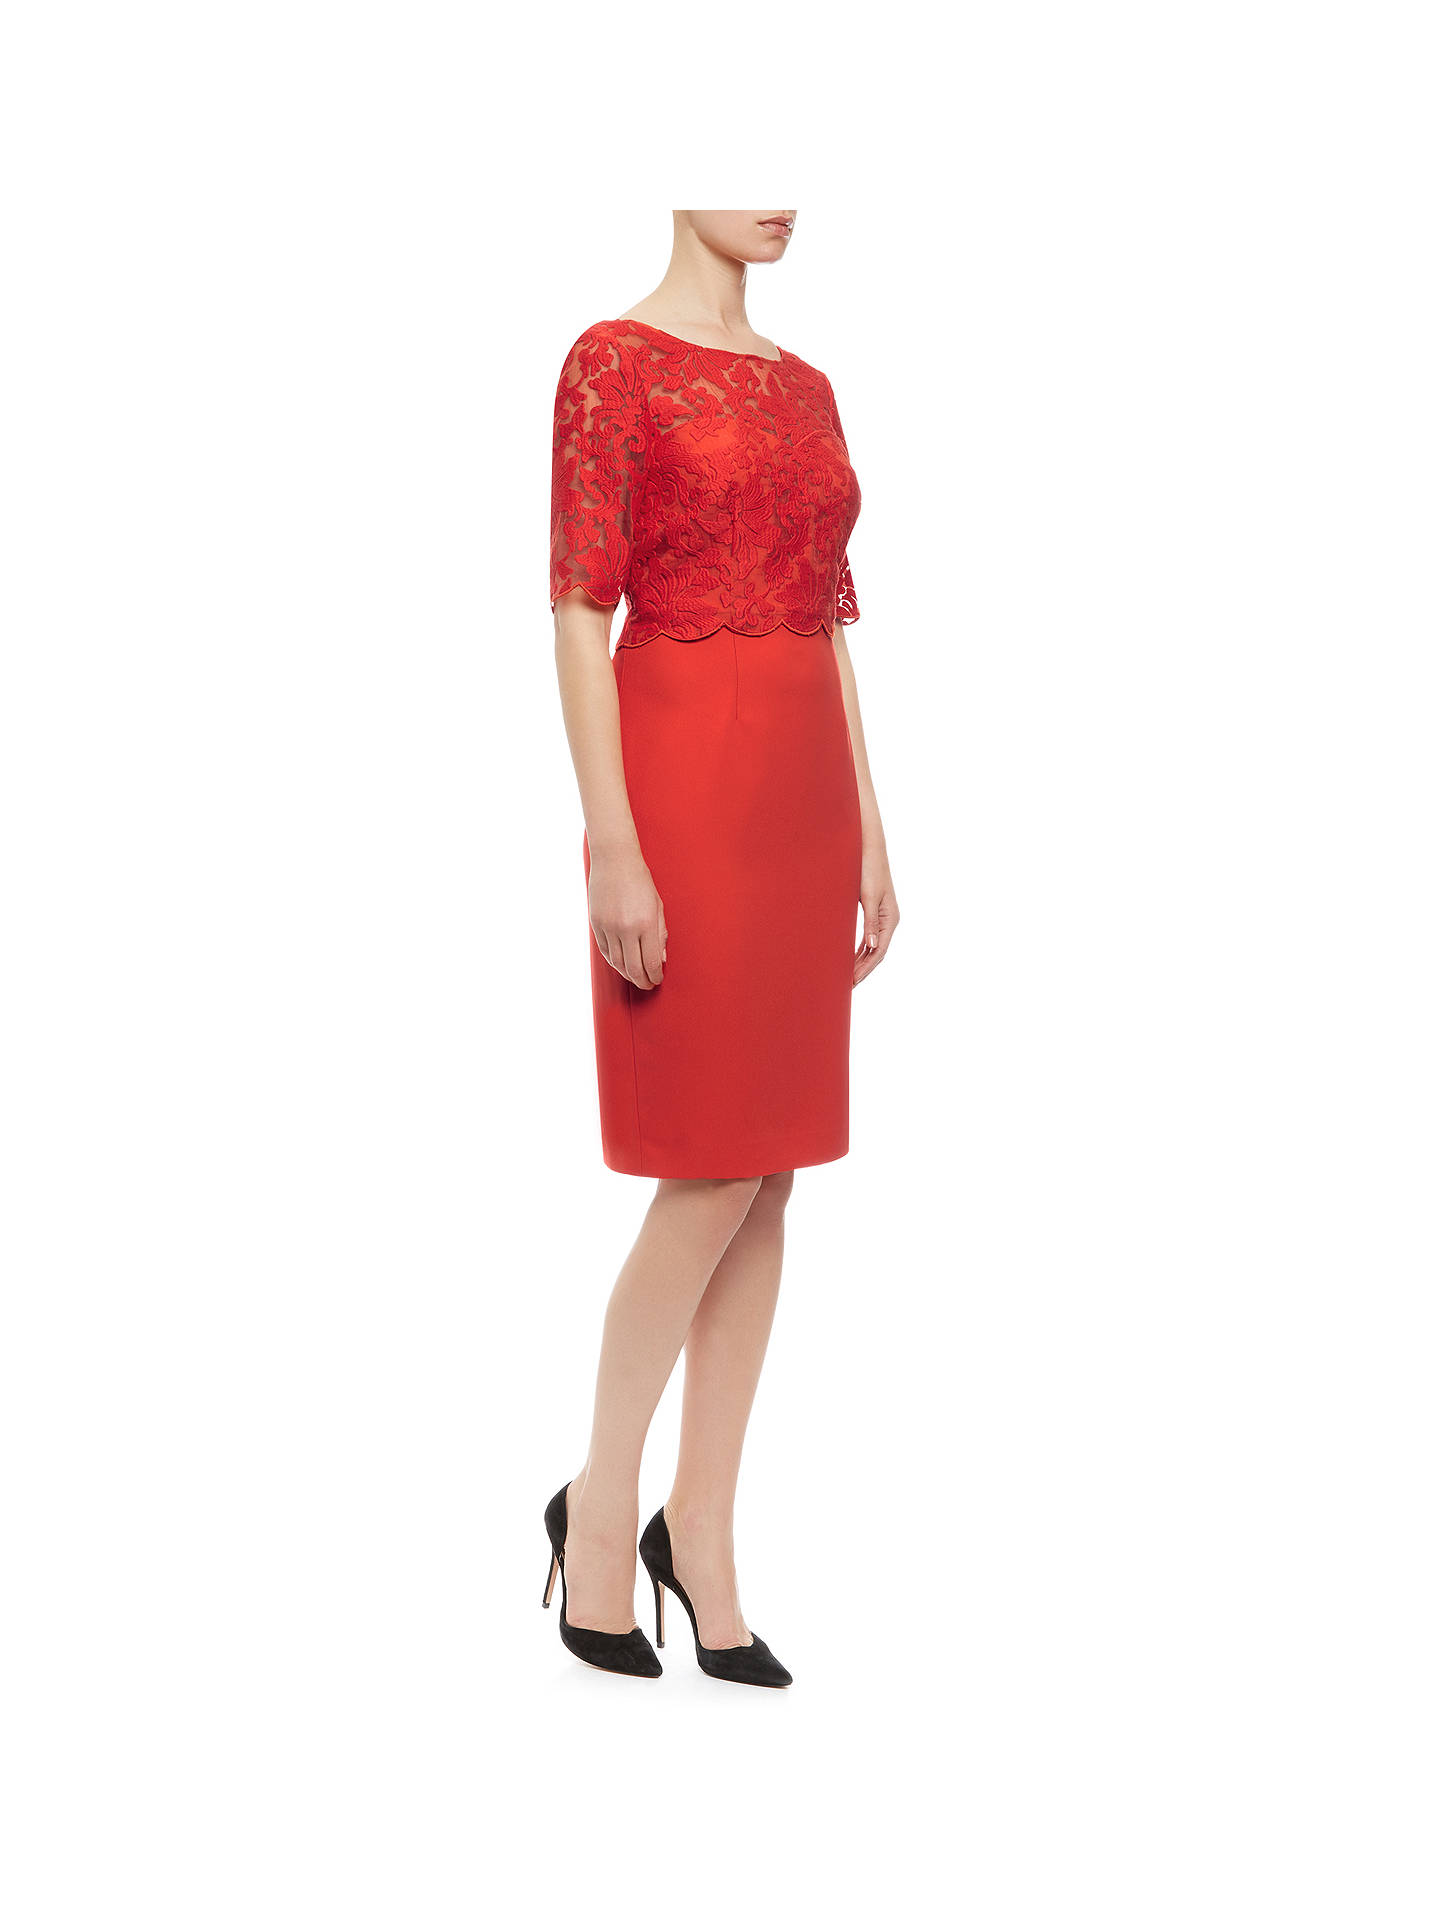 san francisco sold worldwide newest collection Kaliko Lace Bodice Dress, Bright Red at John Lewis & Partners